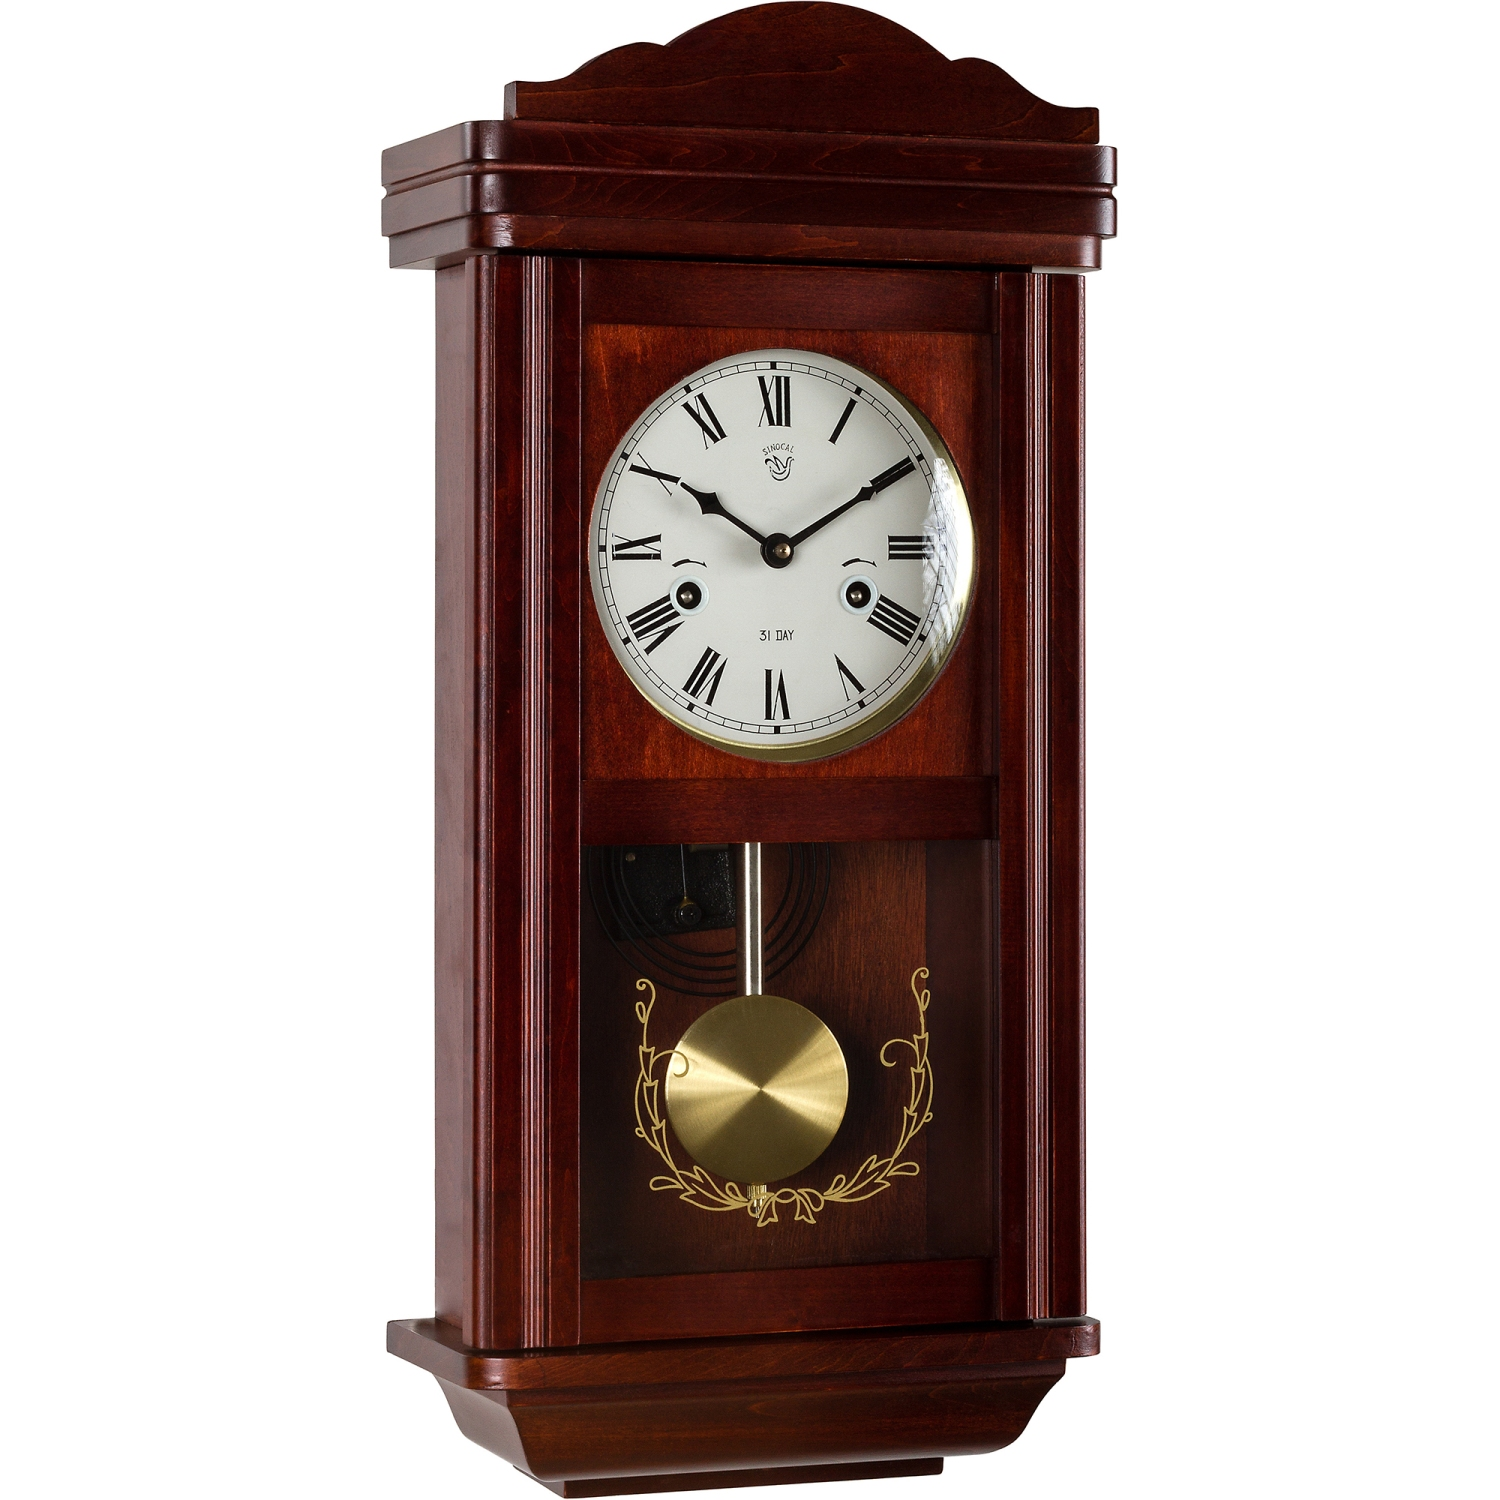 wanduhr pendeluhr regulator antik mechanisch mahagoni holz uhr theseus ebay. Black Bedroom Furniture Sets. Home Design Ideas